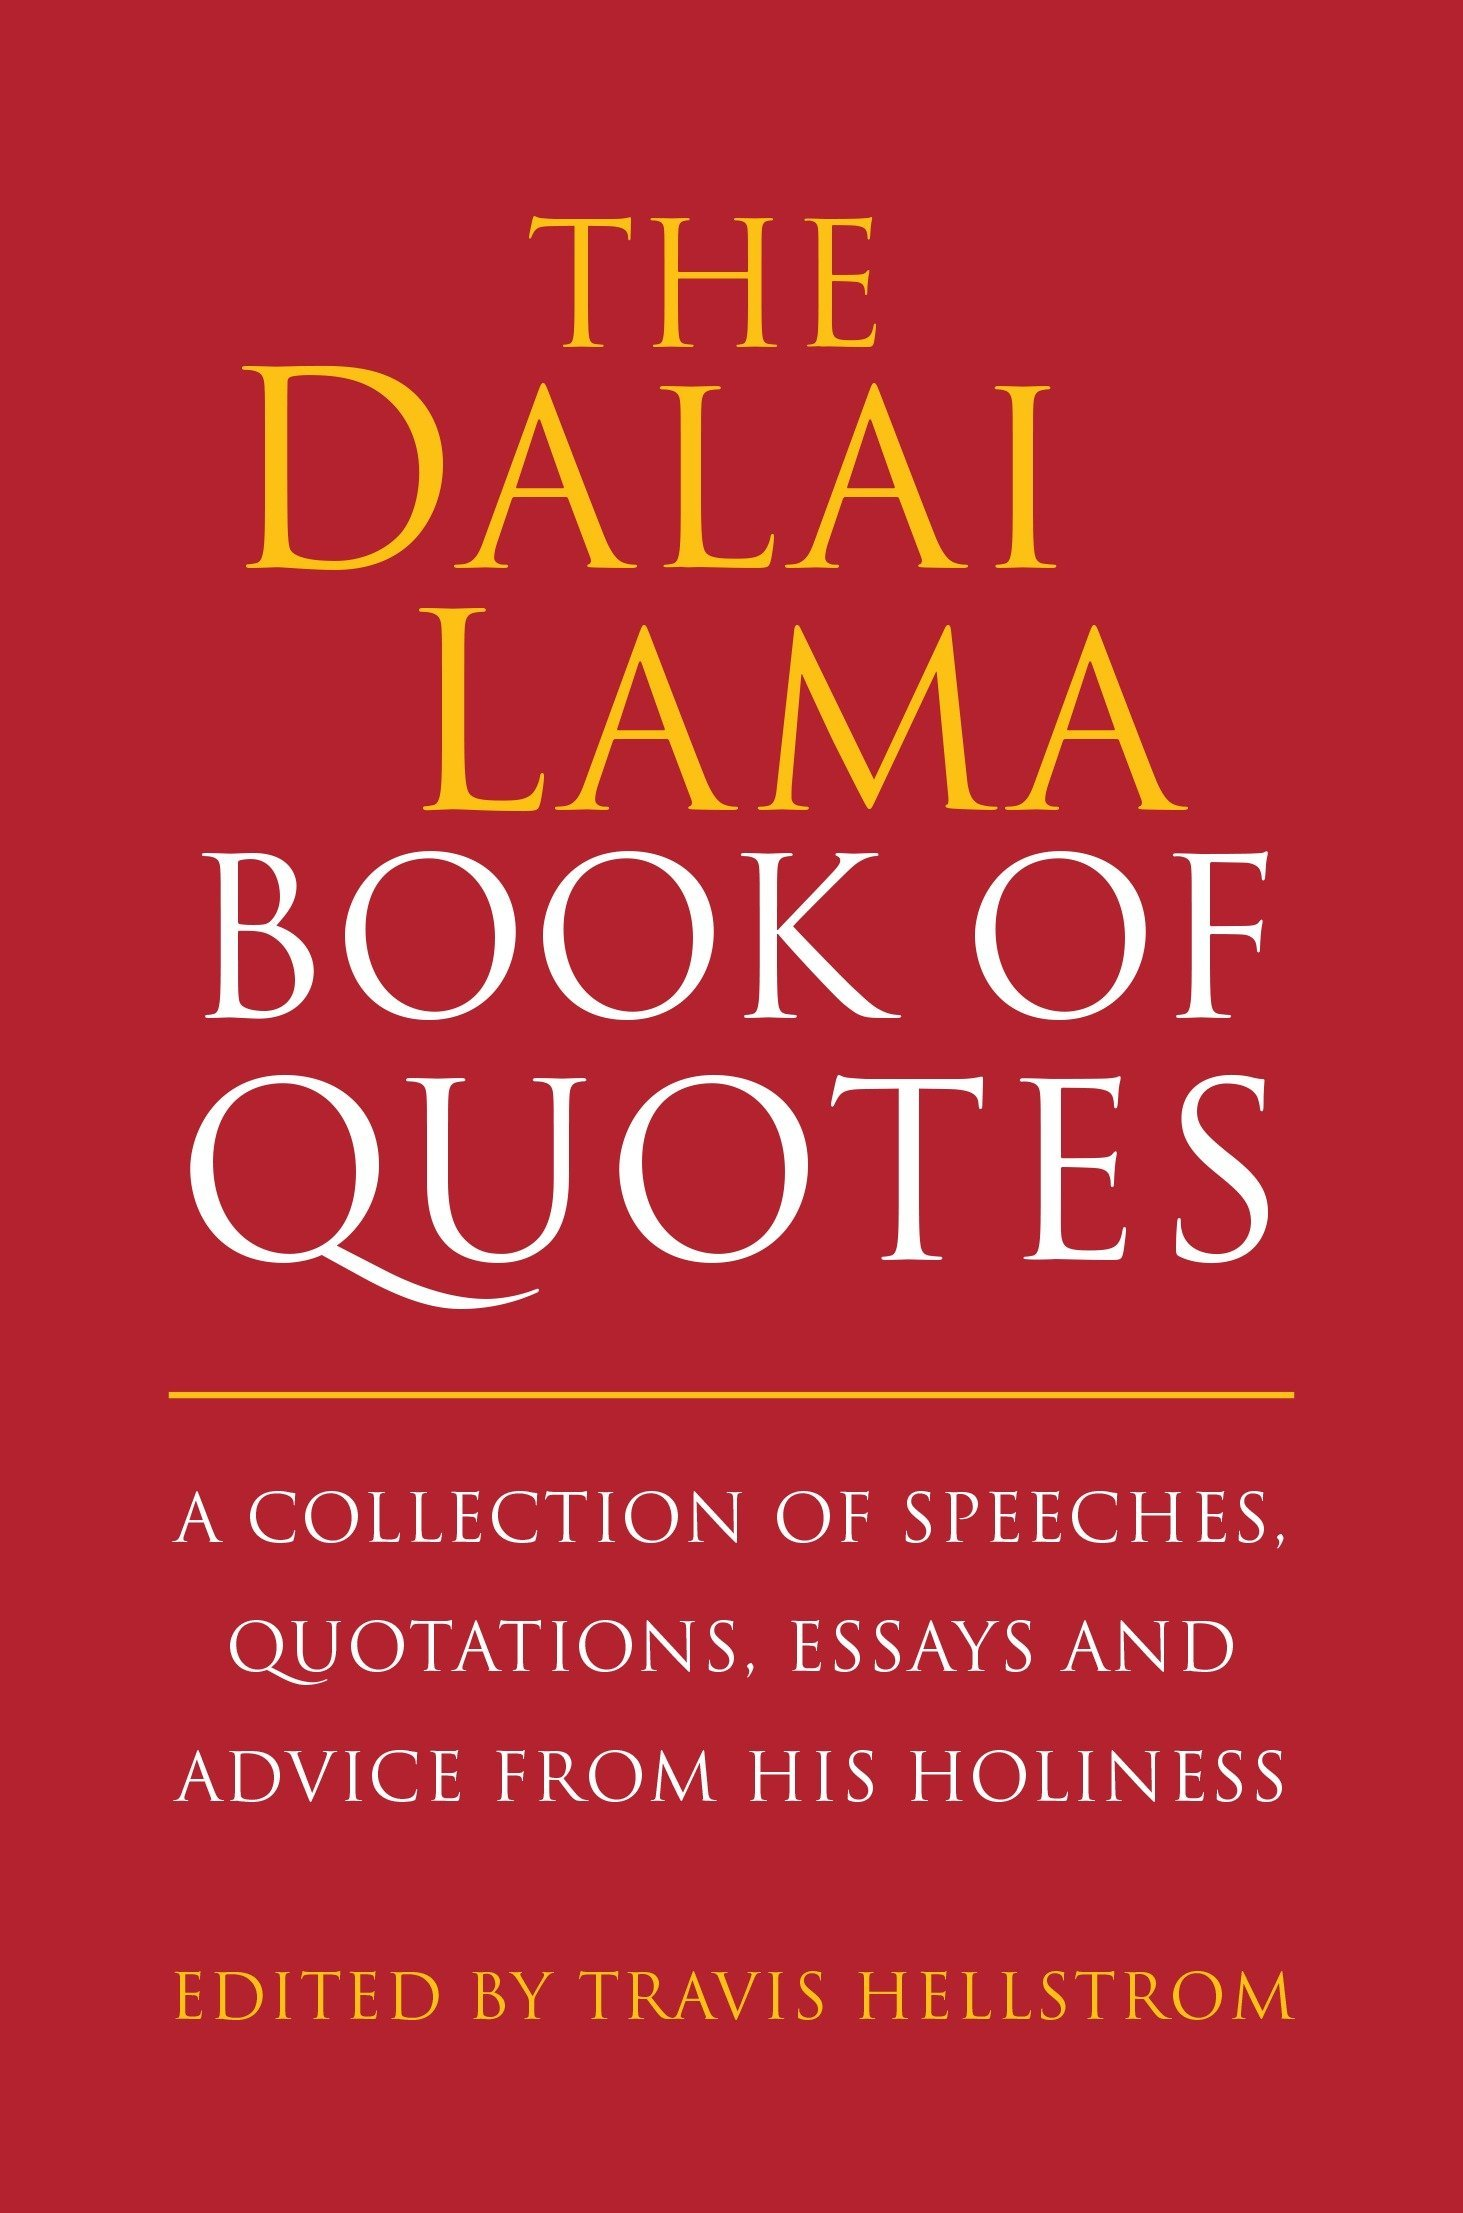 Amazoncom The Dalai Lama Book Of Quotes A Collection Of Speeches  Amazoncom The Dalai Lama Book Of Quotes A Collection Of Speeches  Quotations Essays And Advice From His Holiness Little Book Big Idea